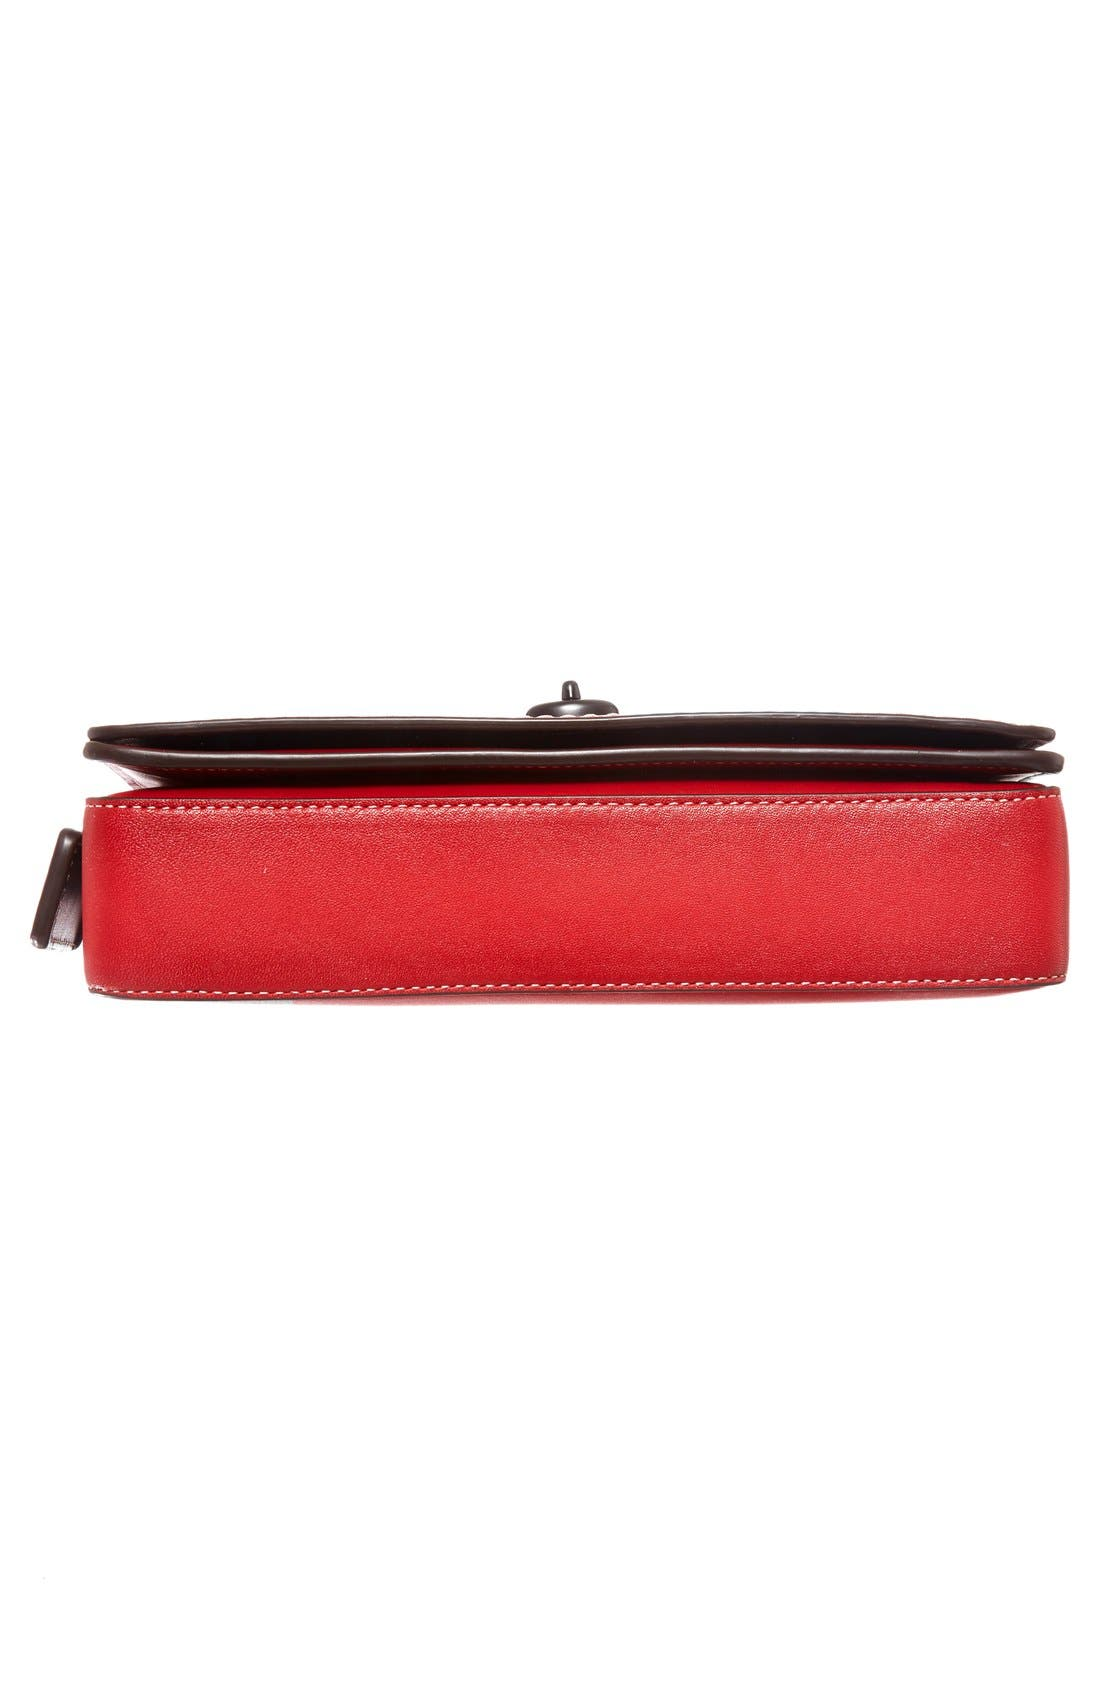 'Dinky' Leather Crossbody Bag,                             Alternate thumbnail 6, color,